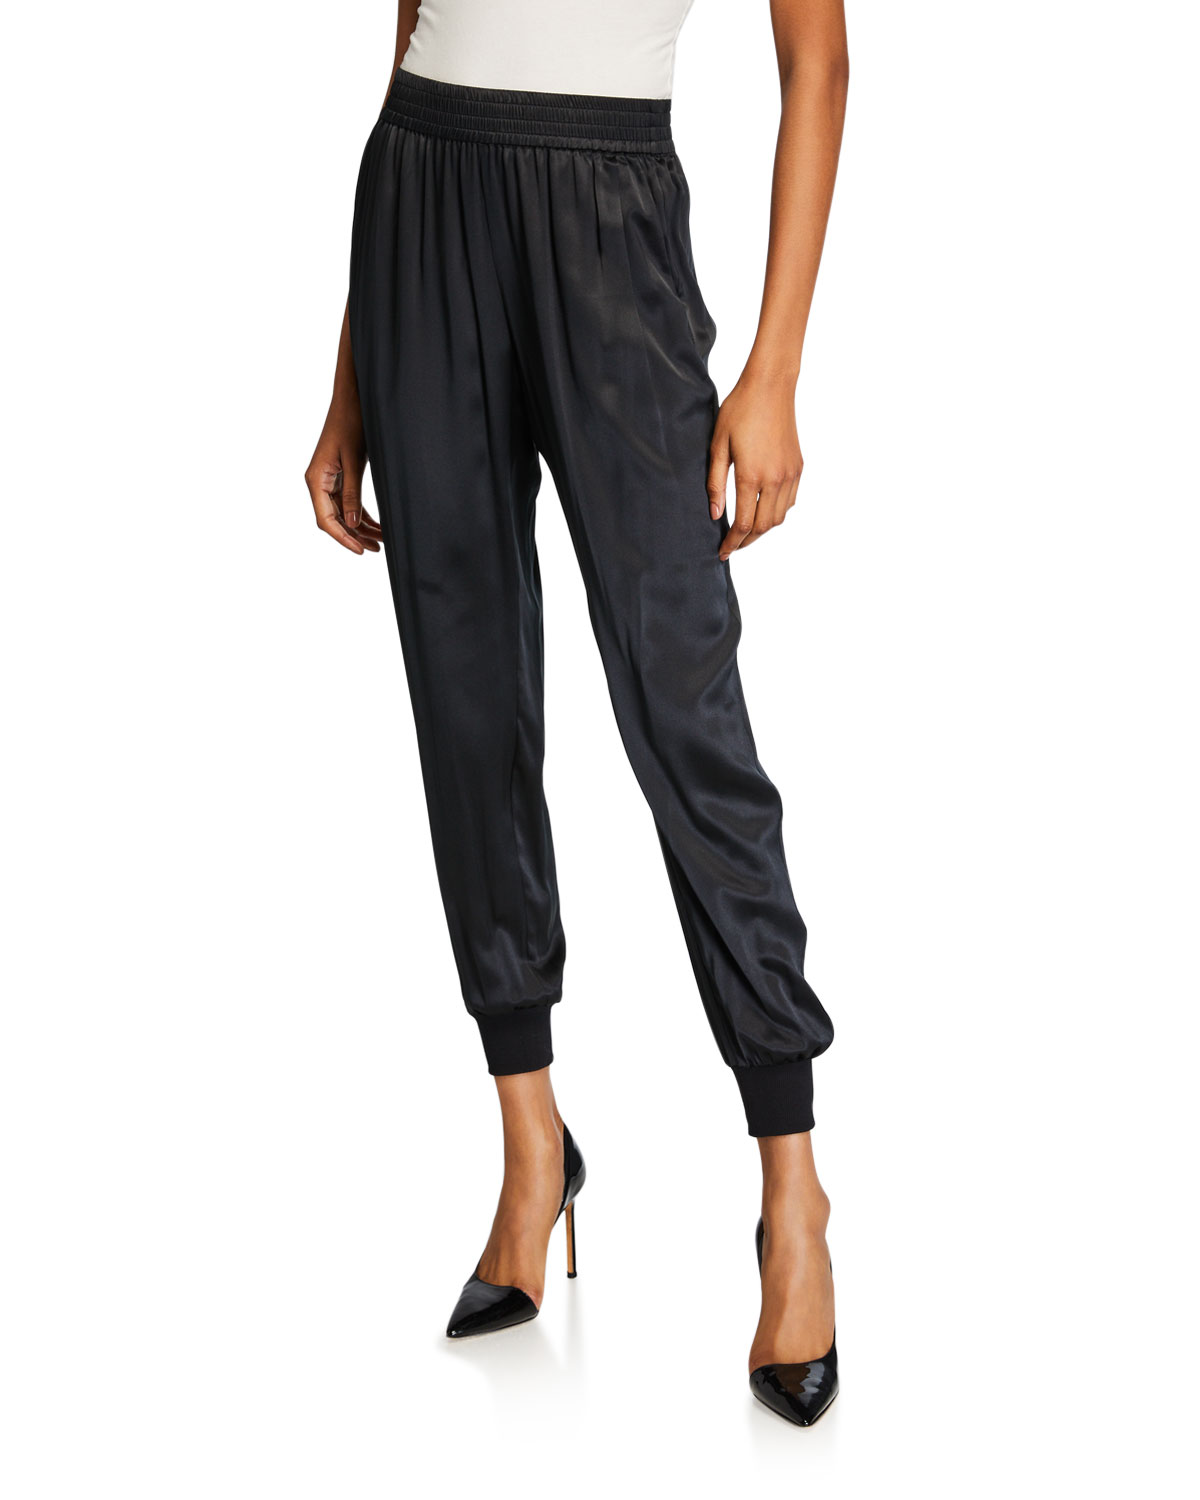 Cami Nyc Pants THE SADIE SILK CHARMEUSE JOGGER PANTS